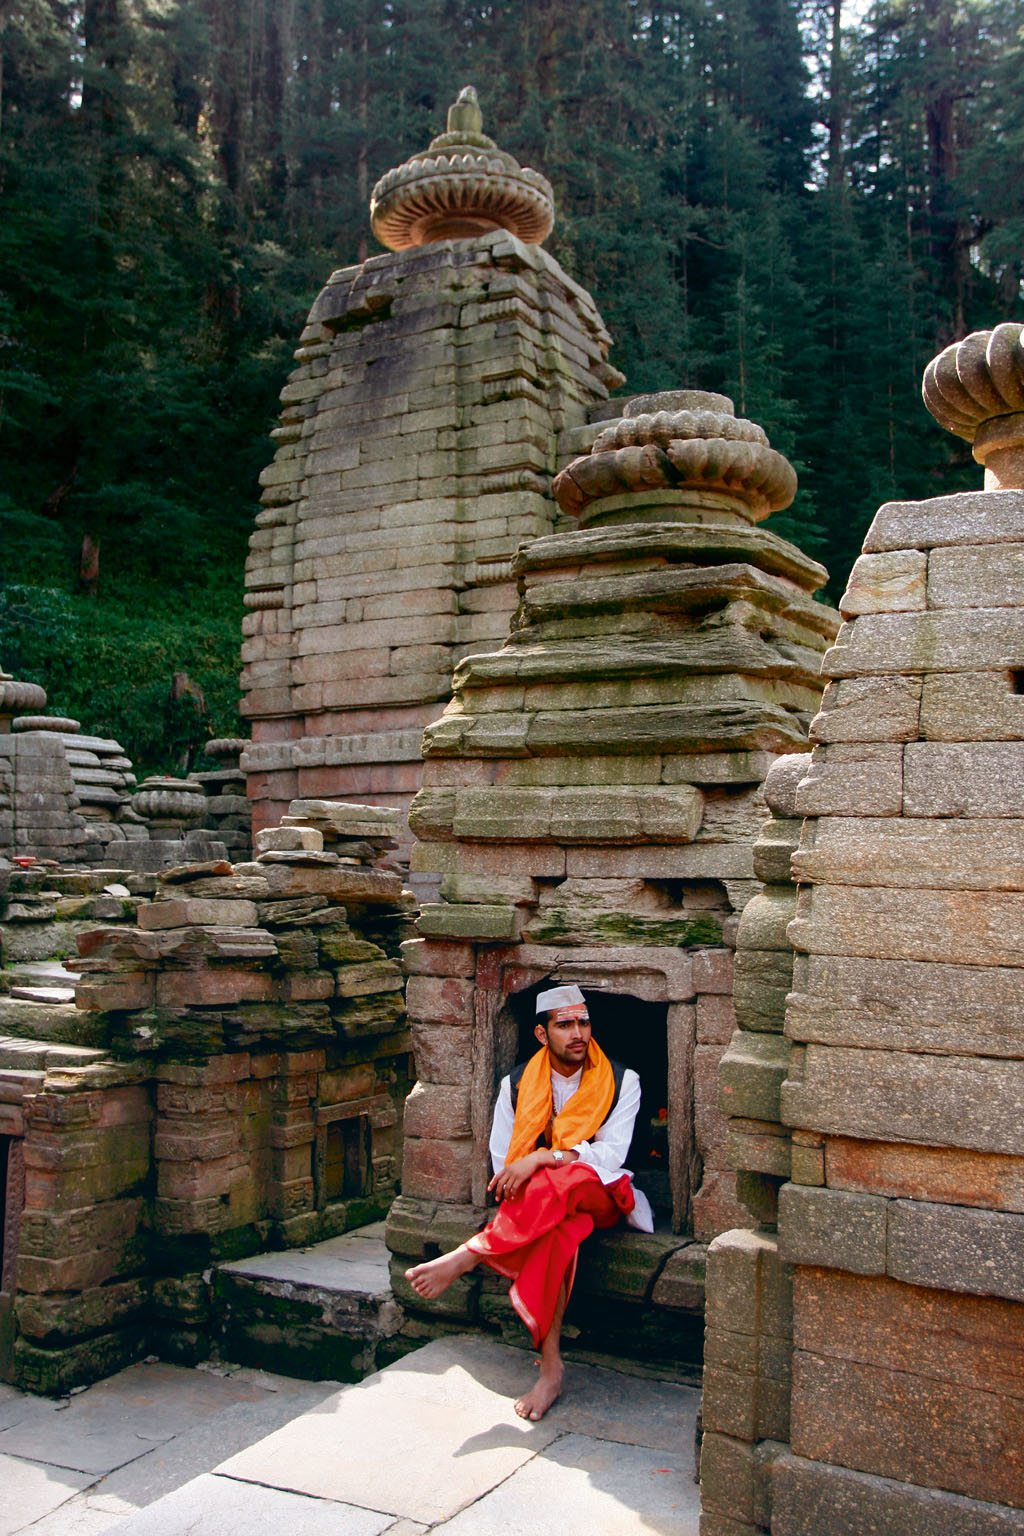 Jageshwar stone temples